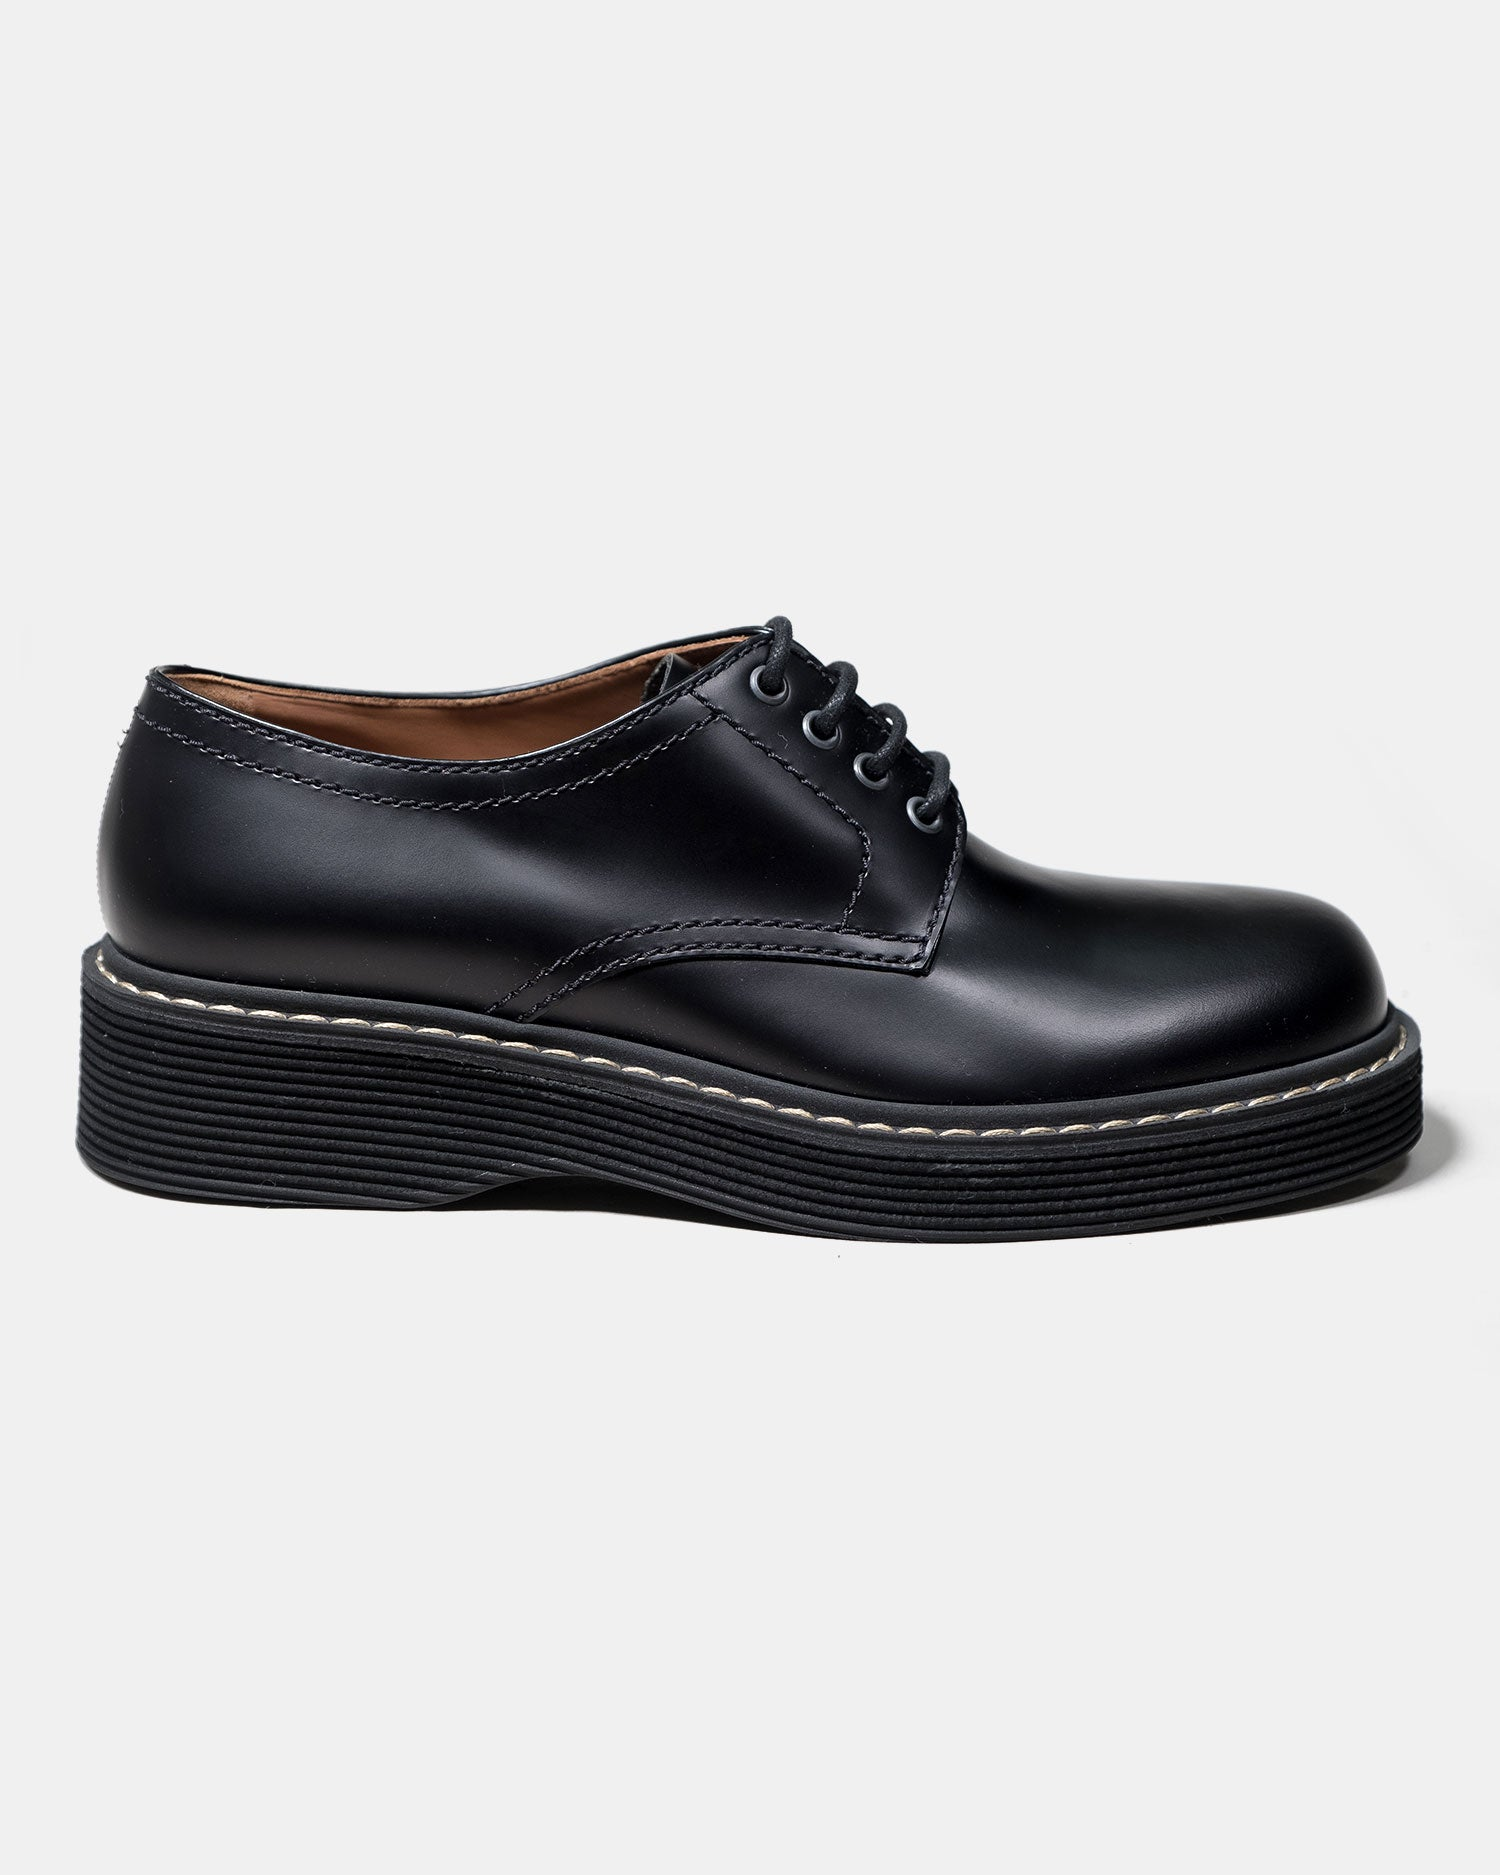 Marni Lace Up Shoe Black